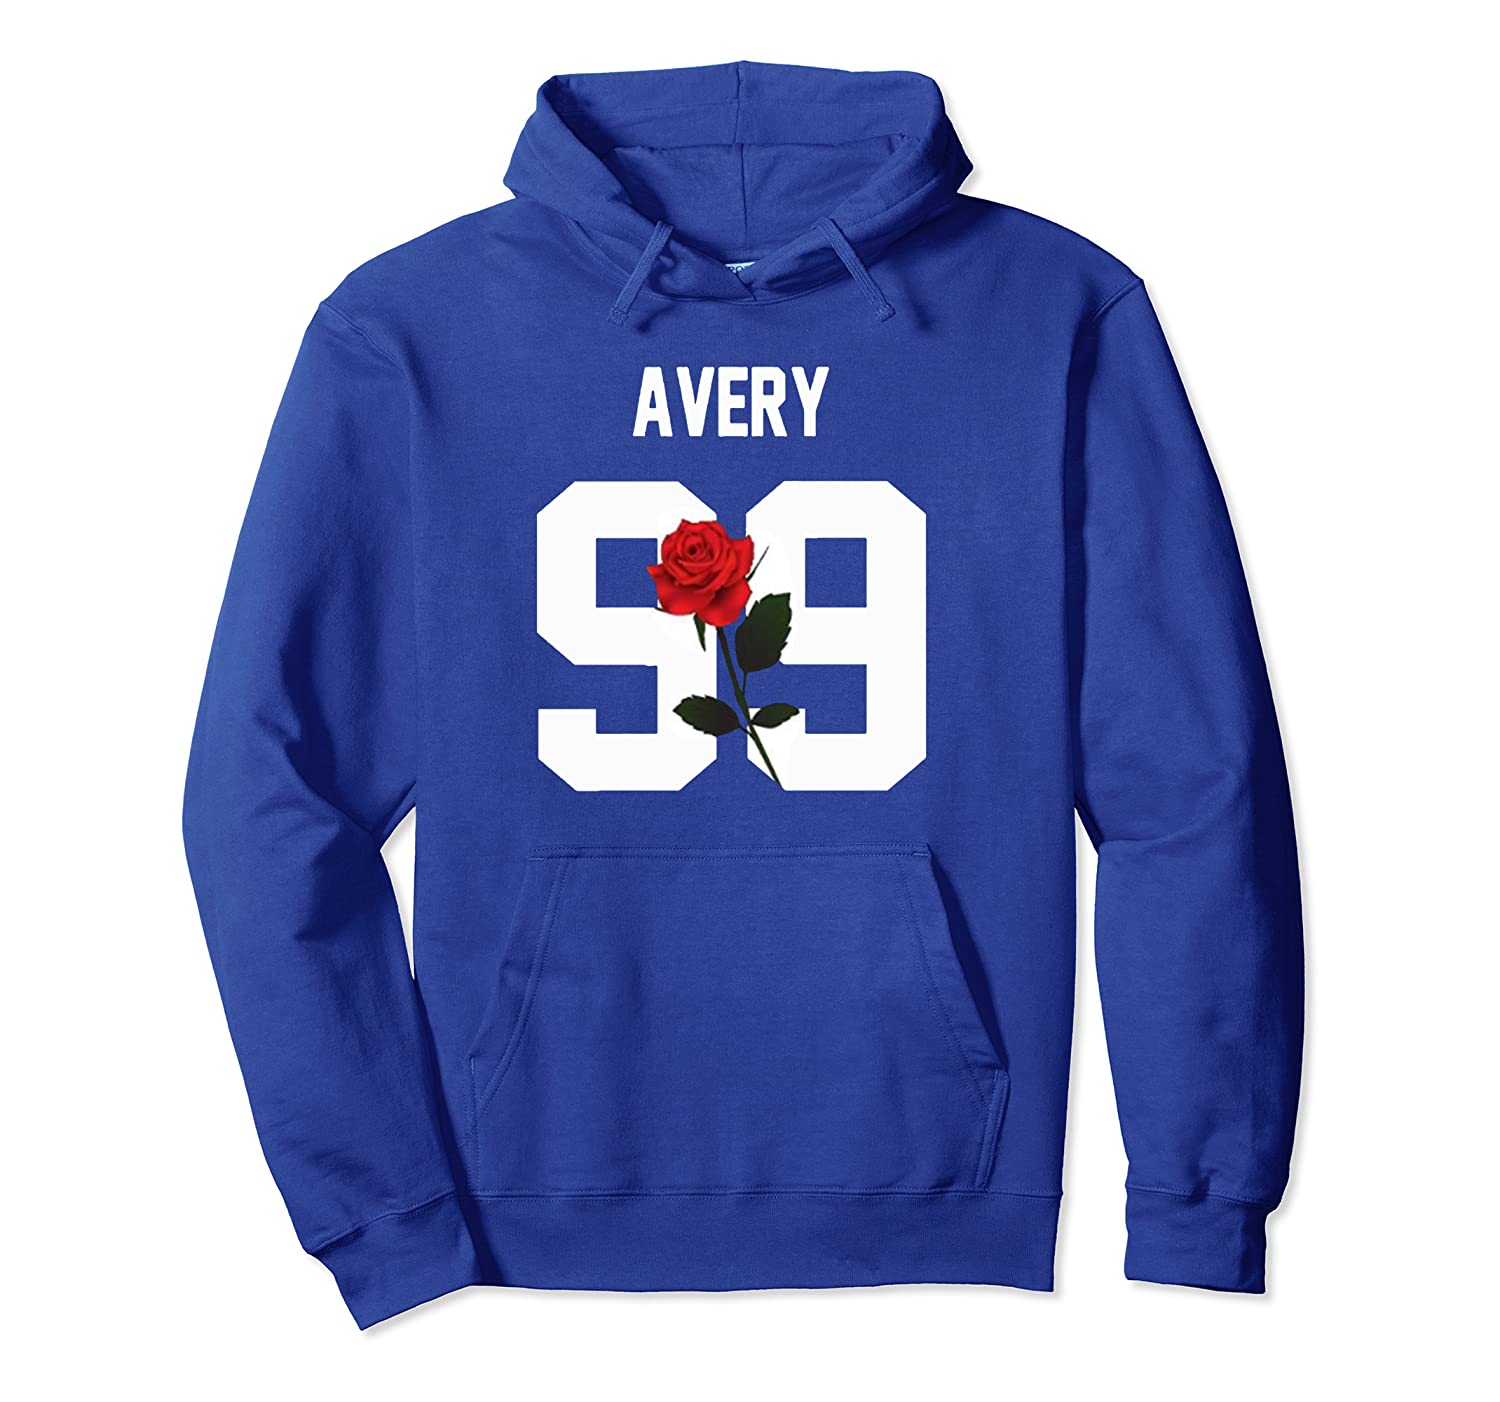 Why Merchandise We Don't Red Rose Jack Avery Fans Gifts Mens Pullover Hoodie-TH